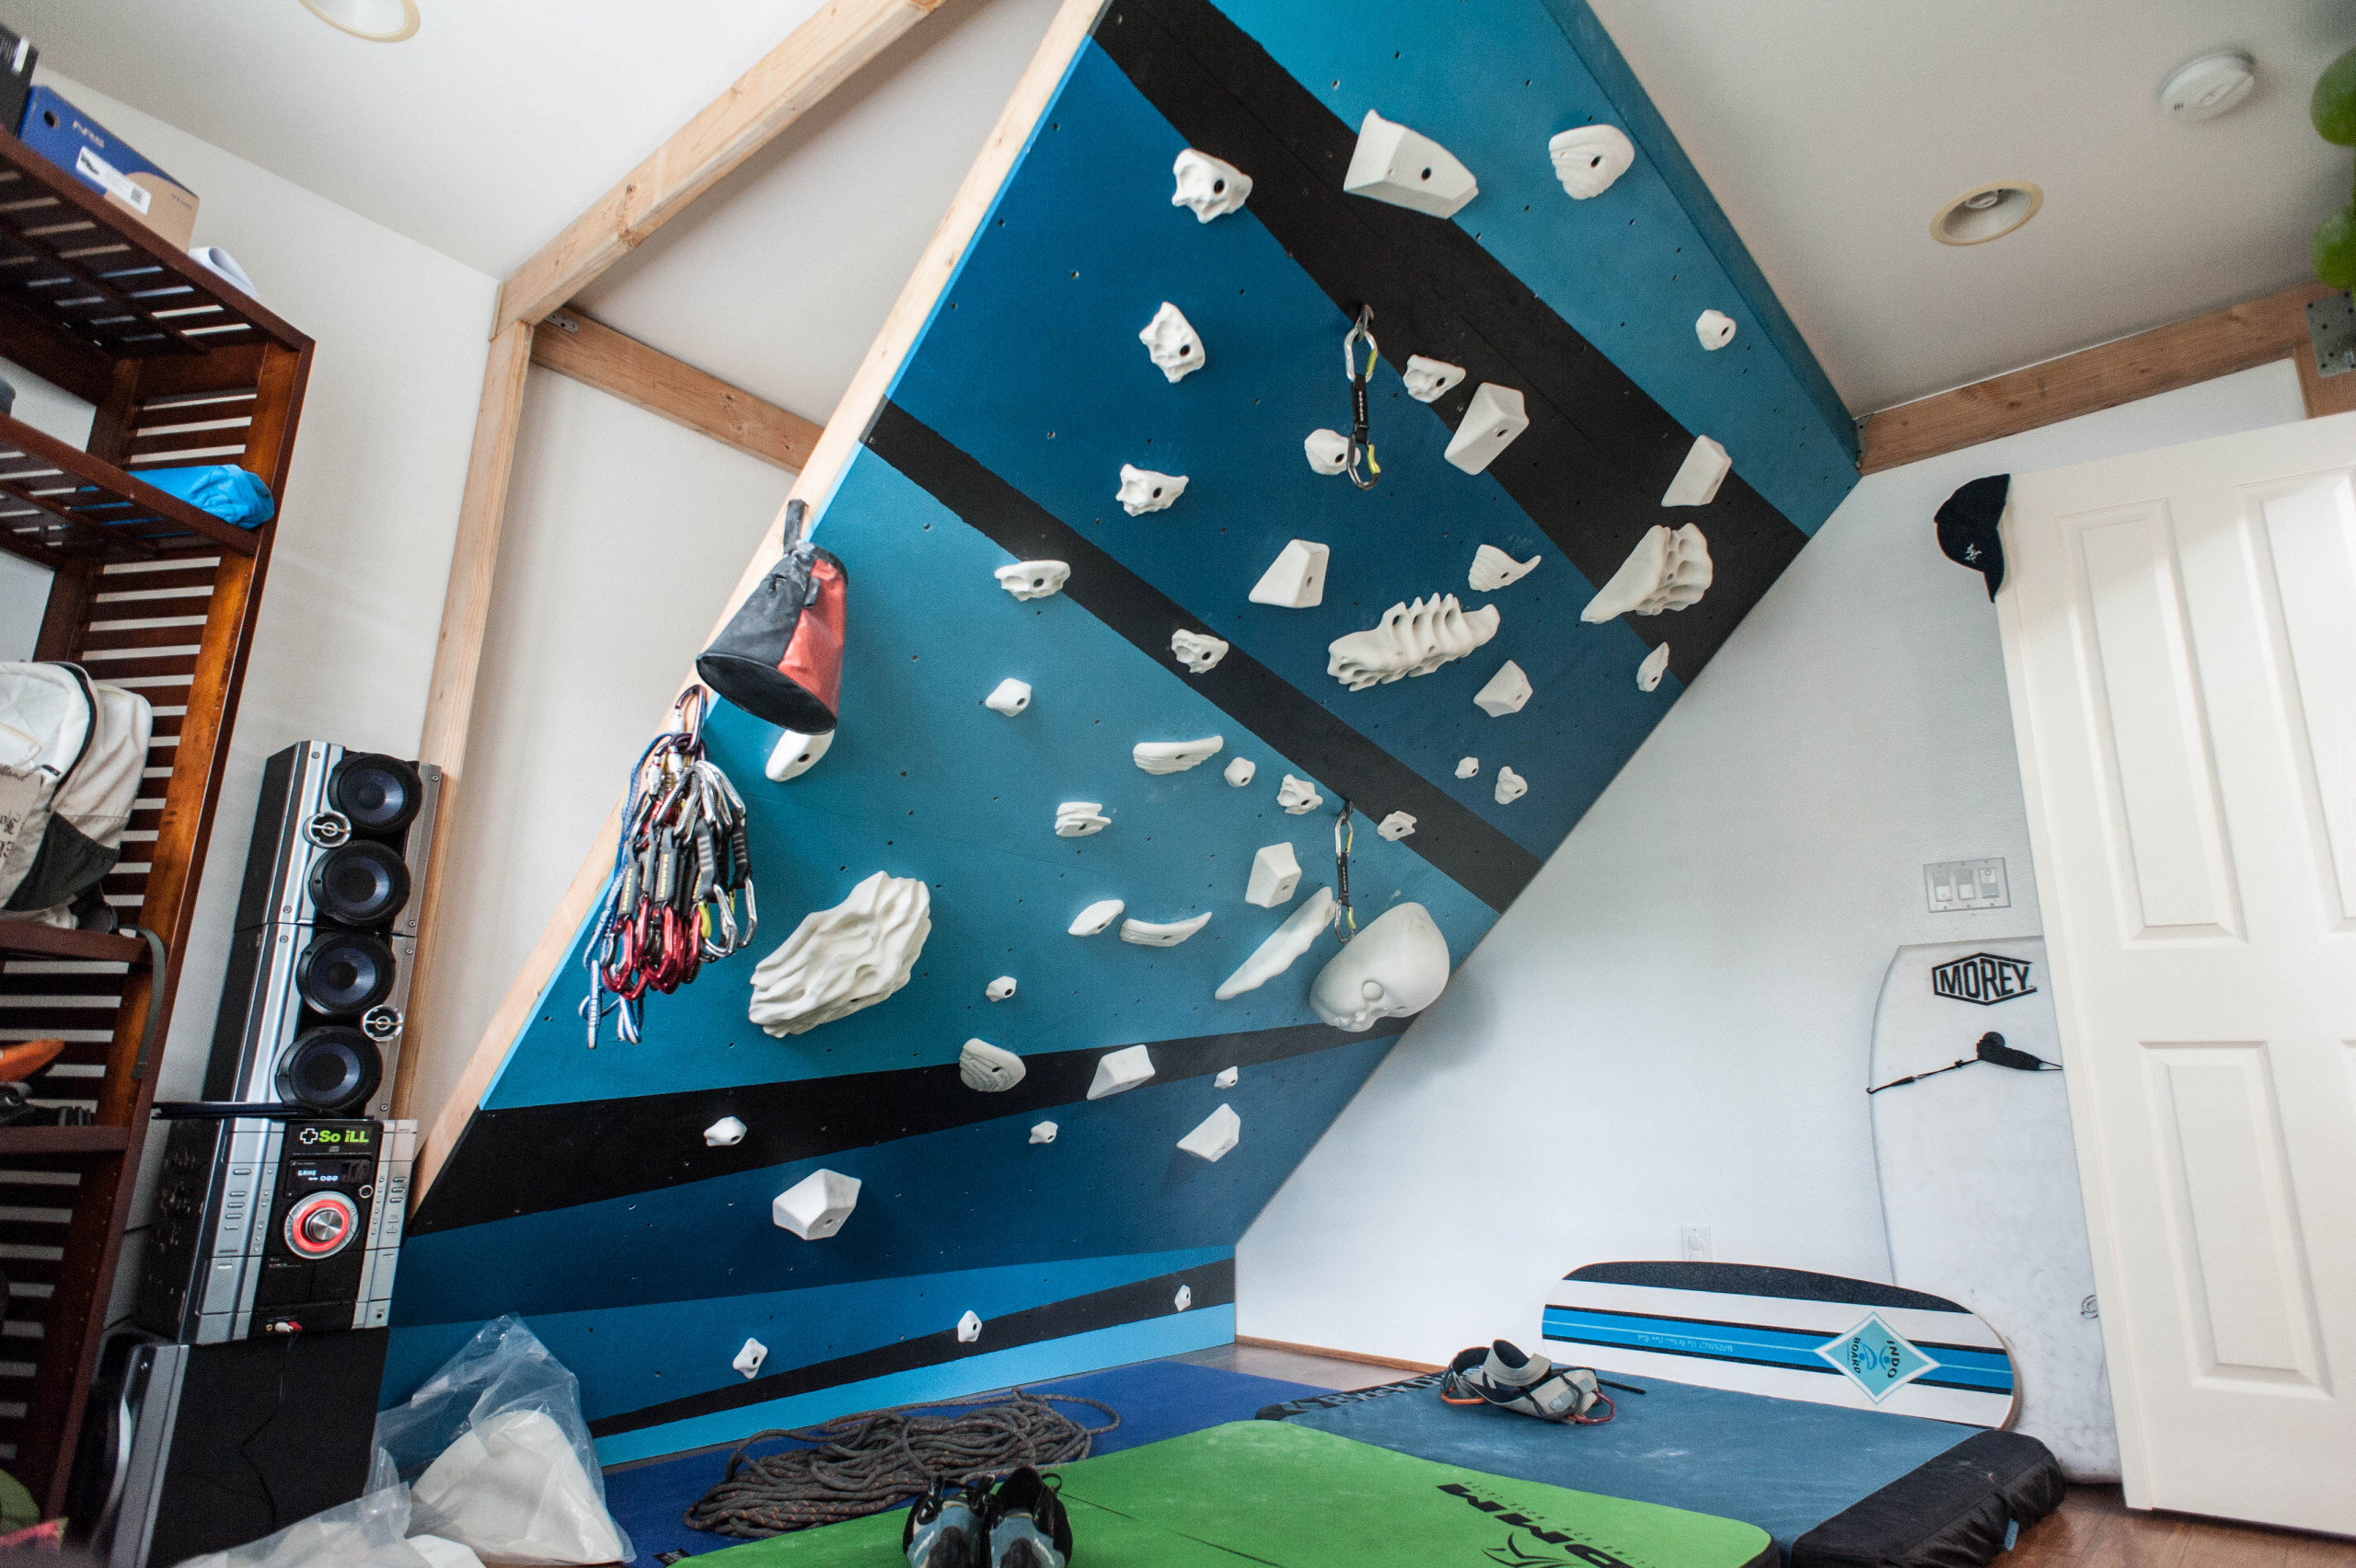 75 Beautiful Home Climbing Wall Pictures Ideas March 2021 Houzz